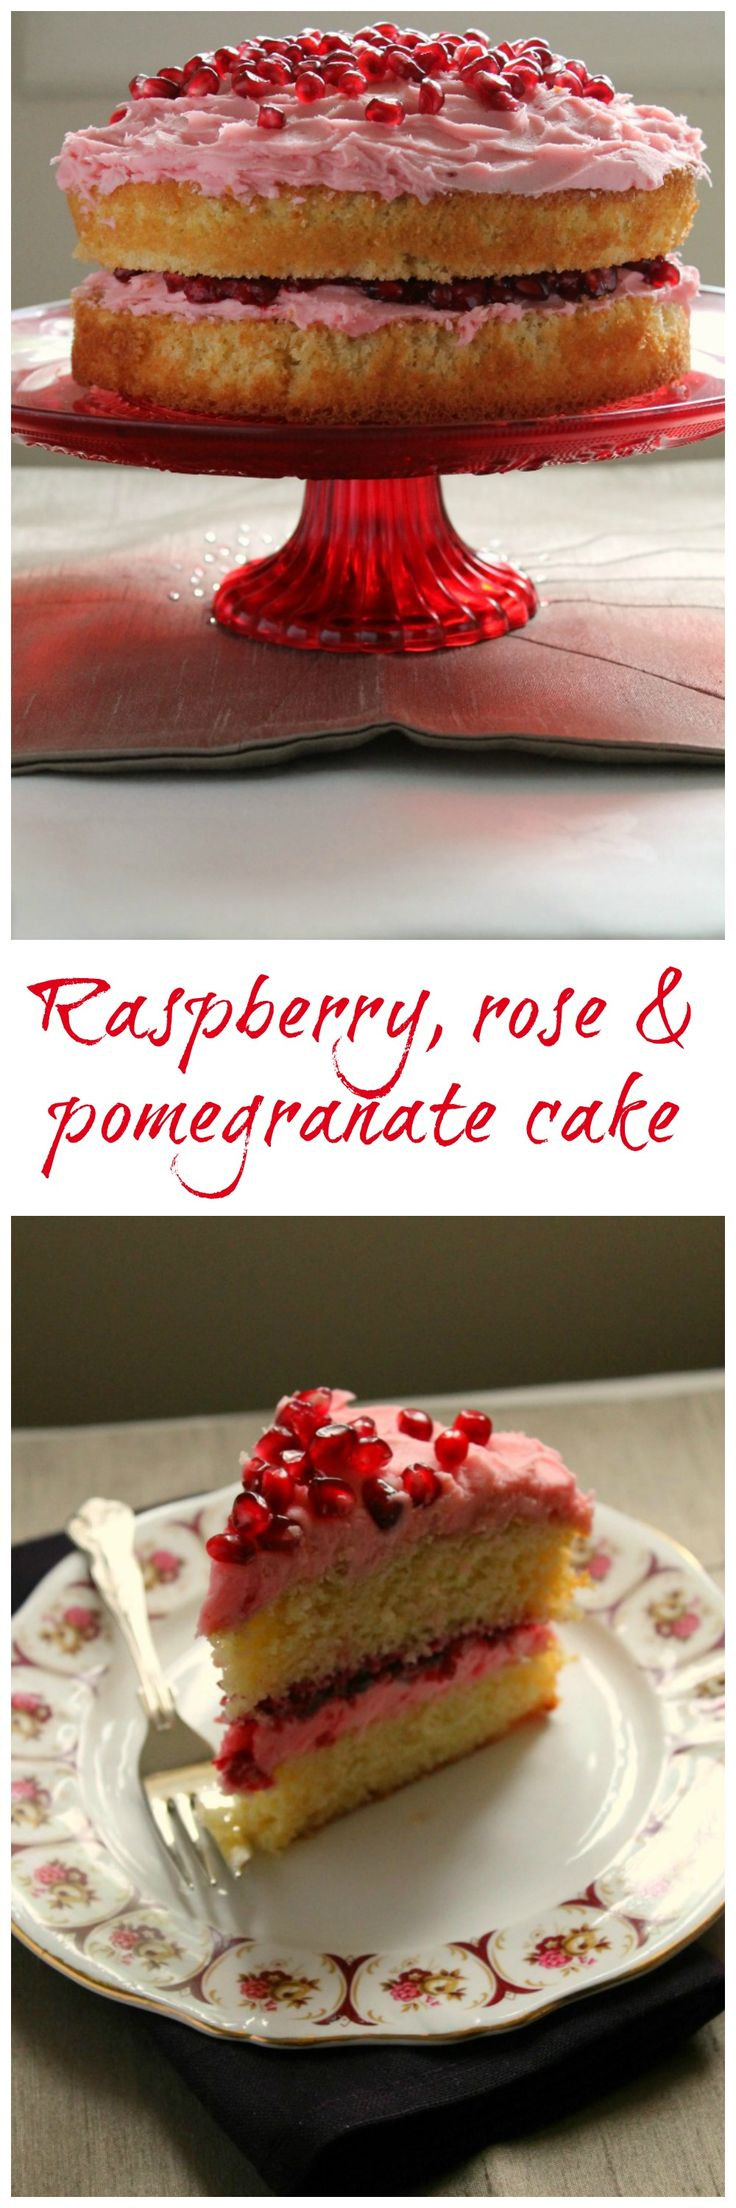 Raspberry, rose and pomegranate layer cake